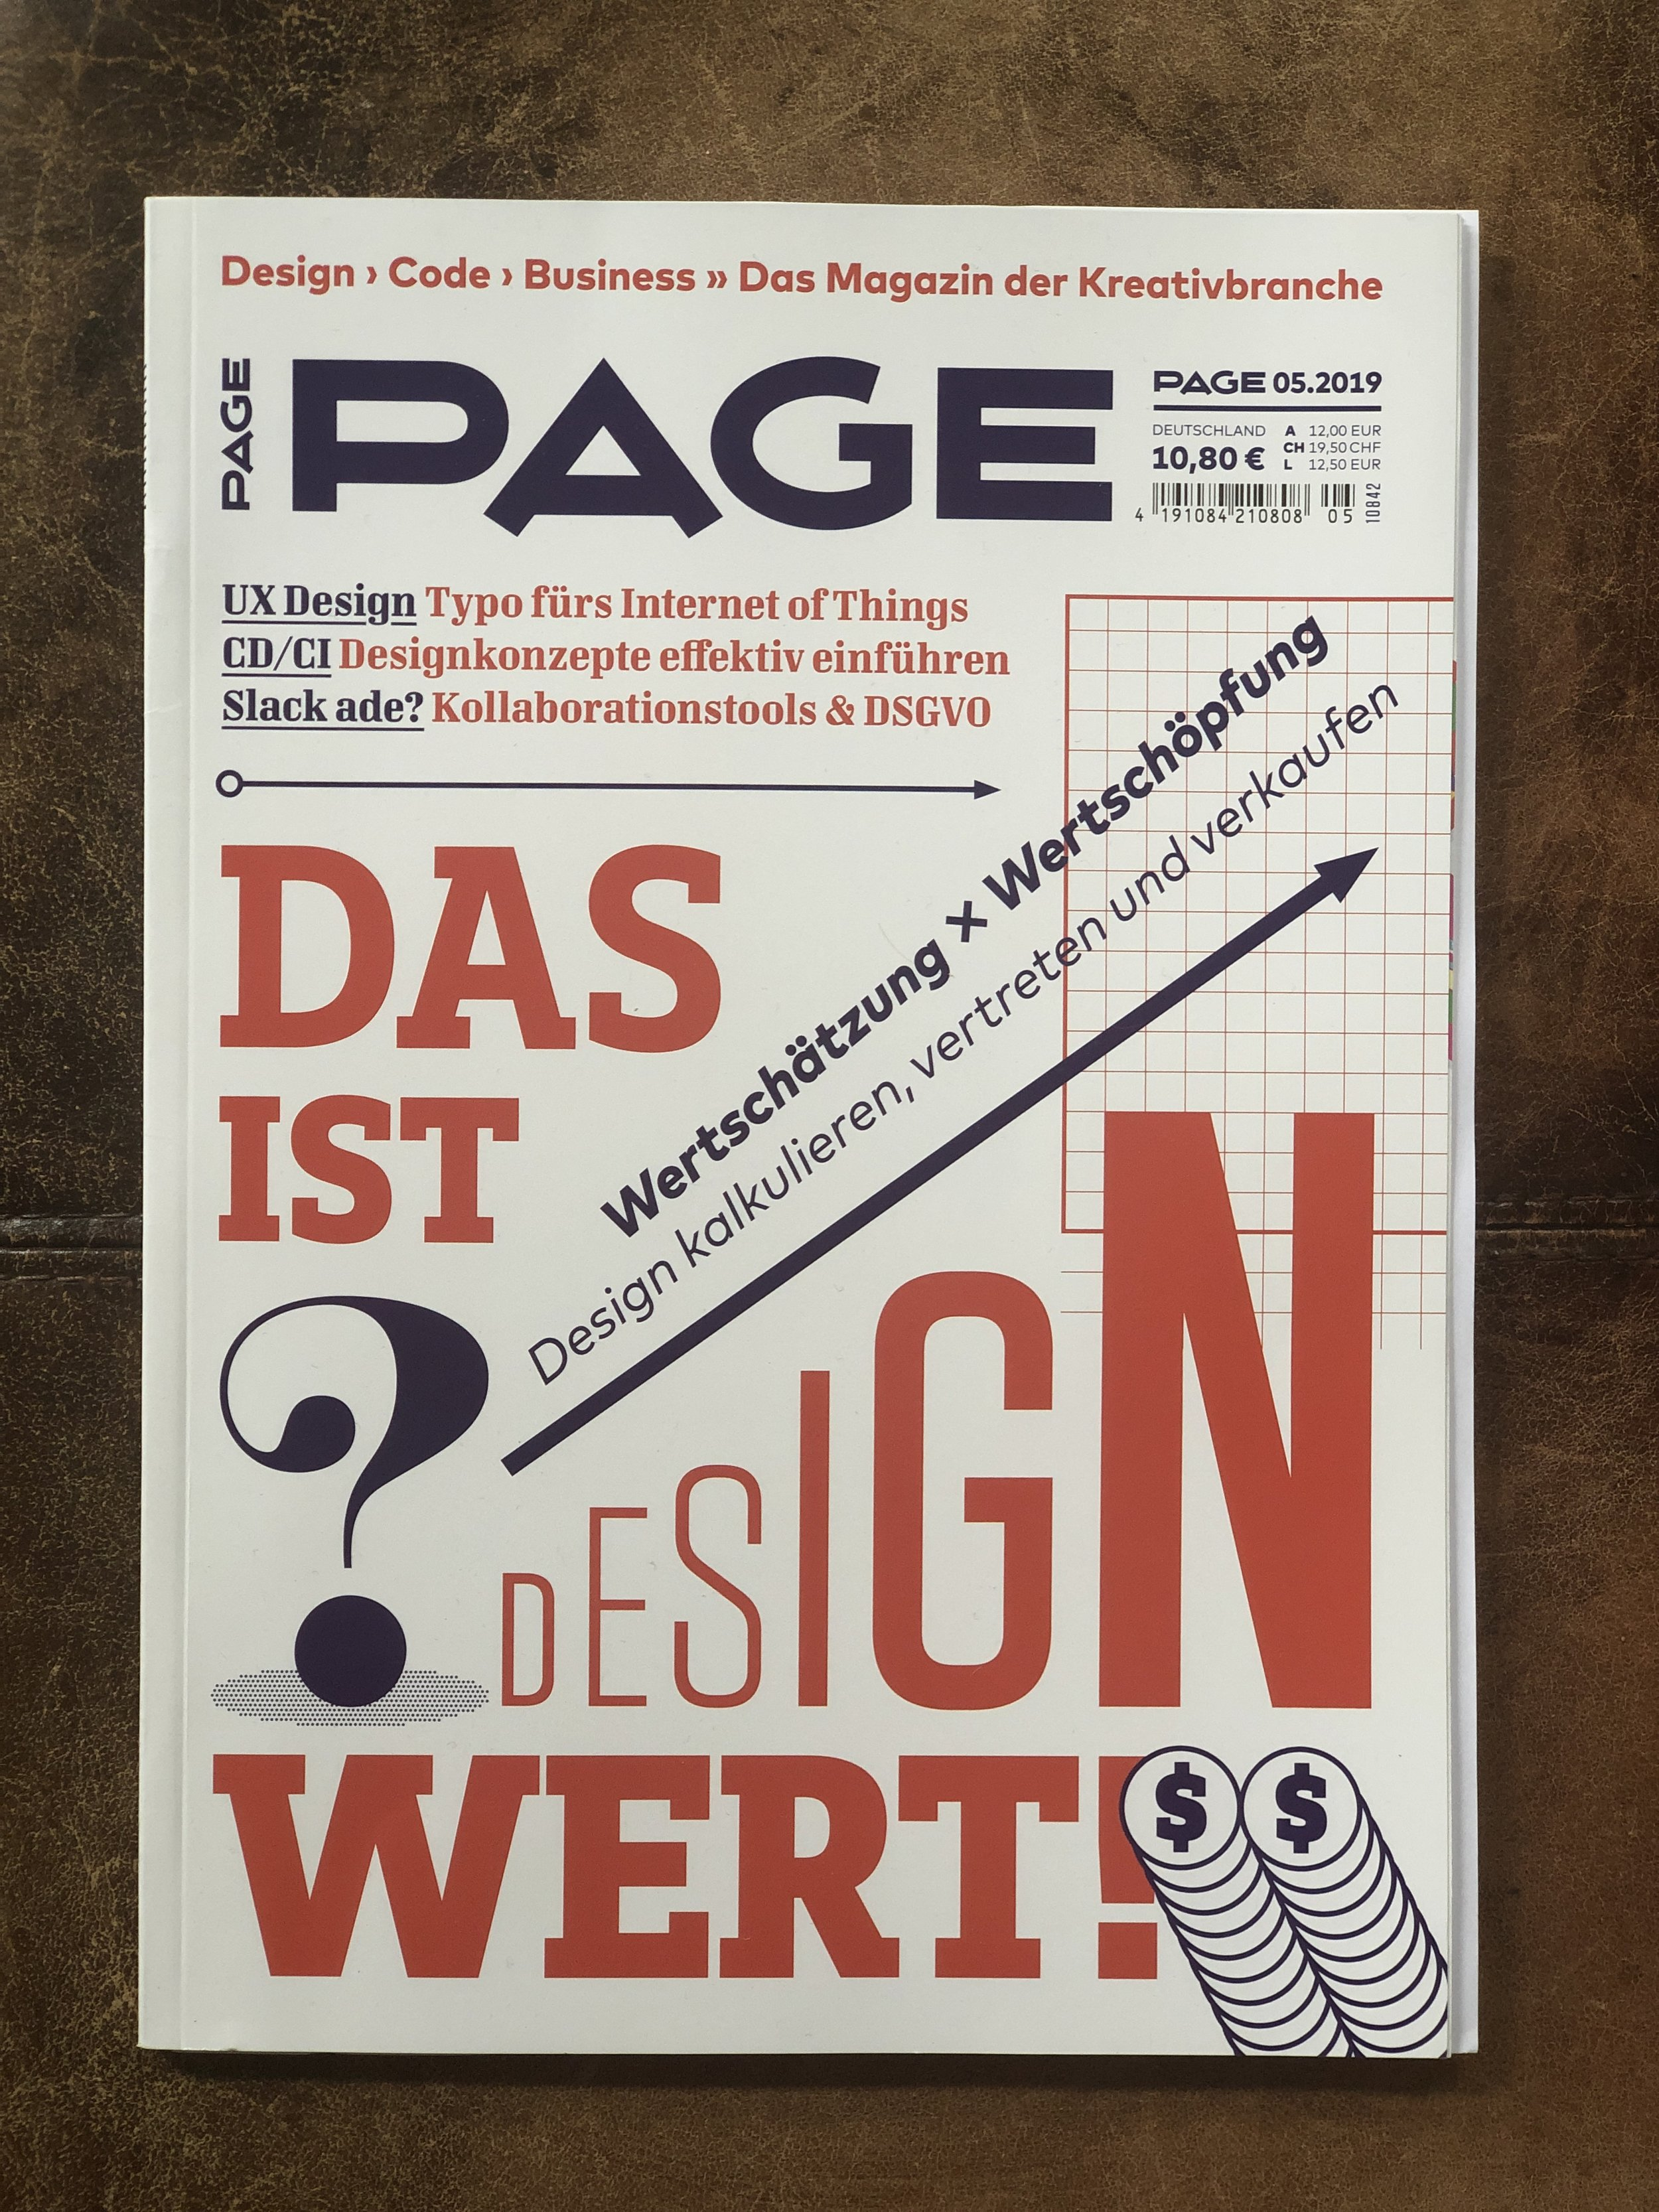 Germany's Page Magazine features Beatie Wolfe